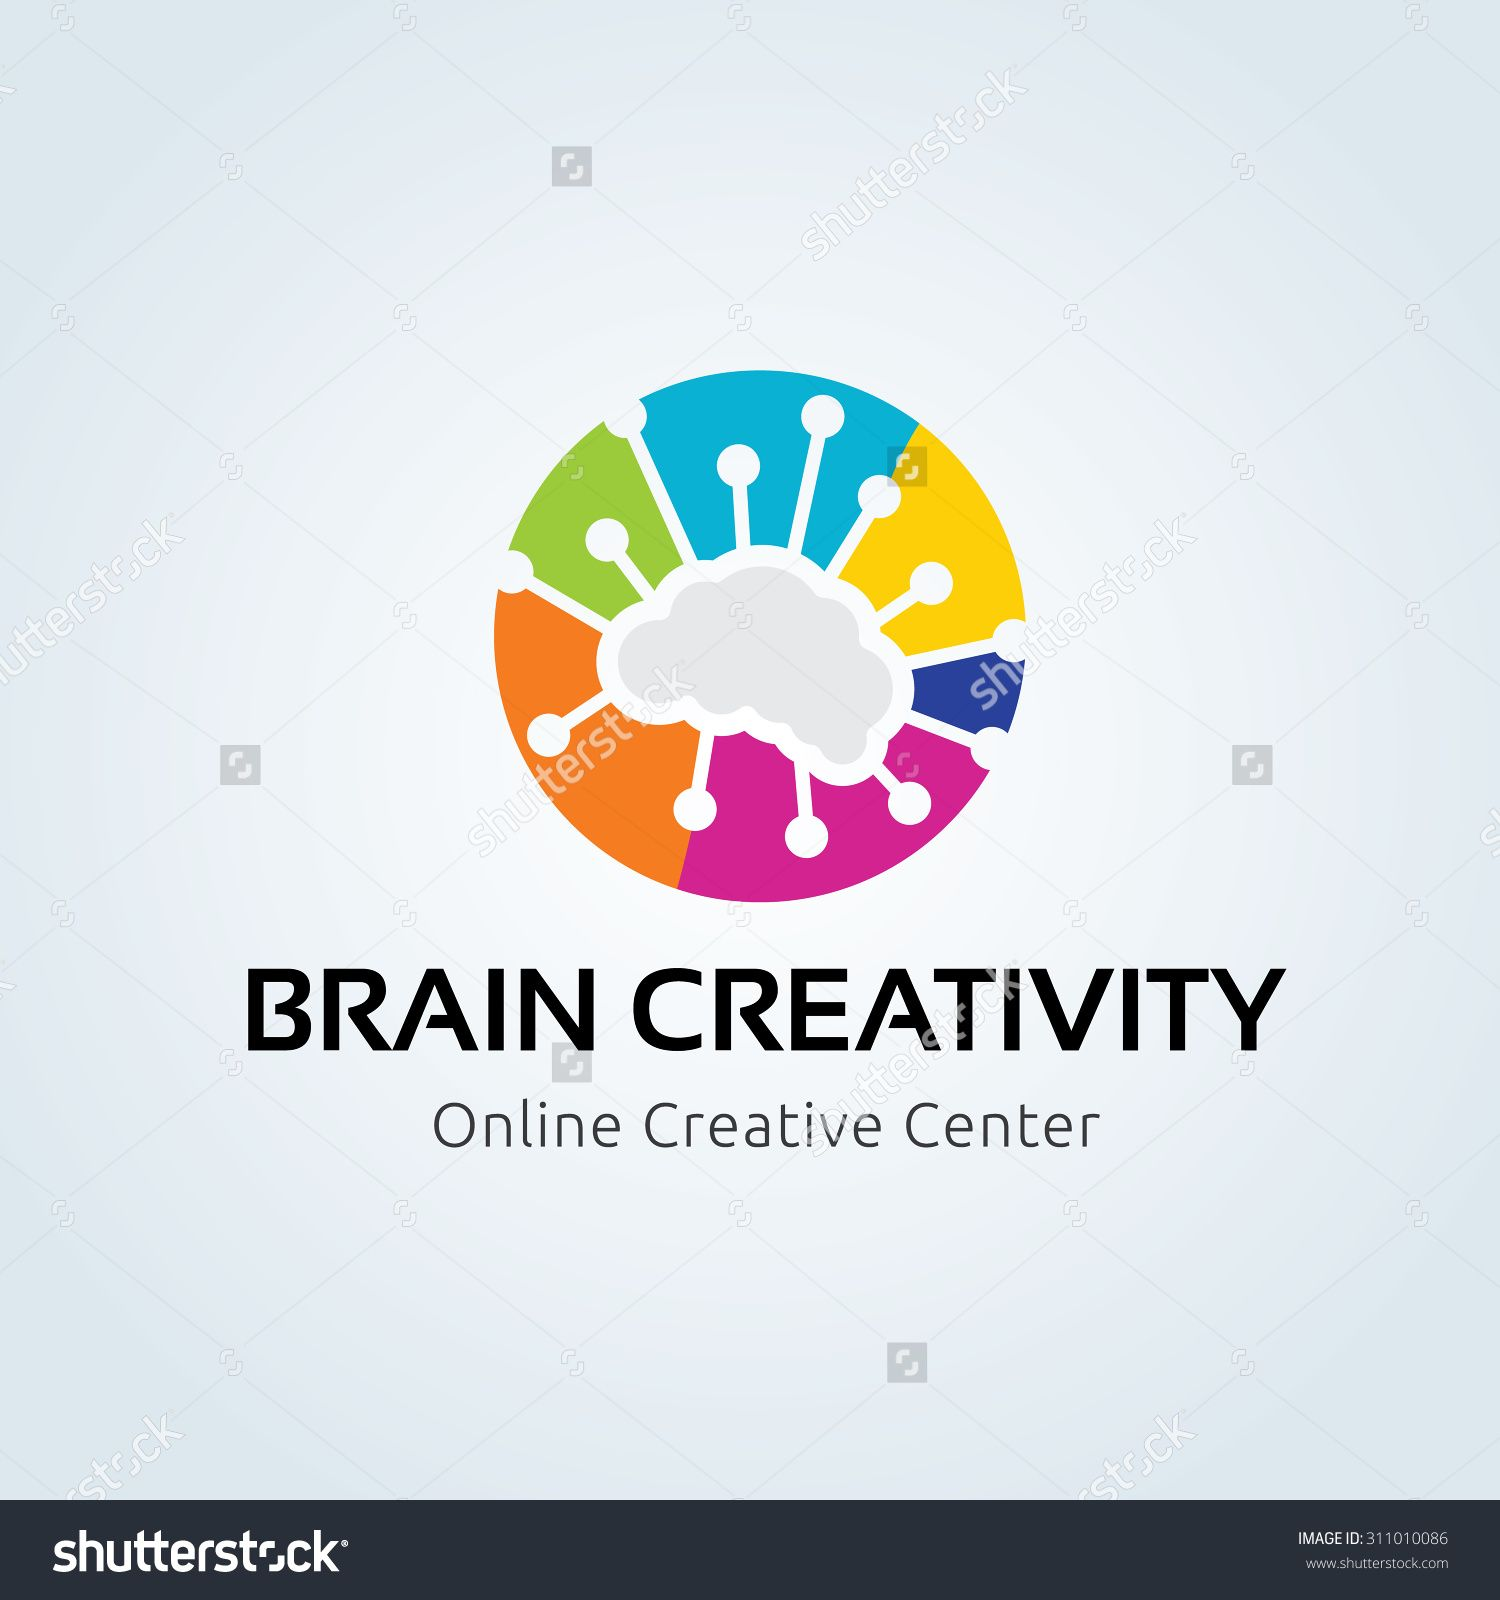 Where can I learn logo designing for free (online)? - Quora